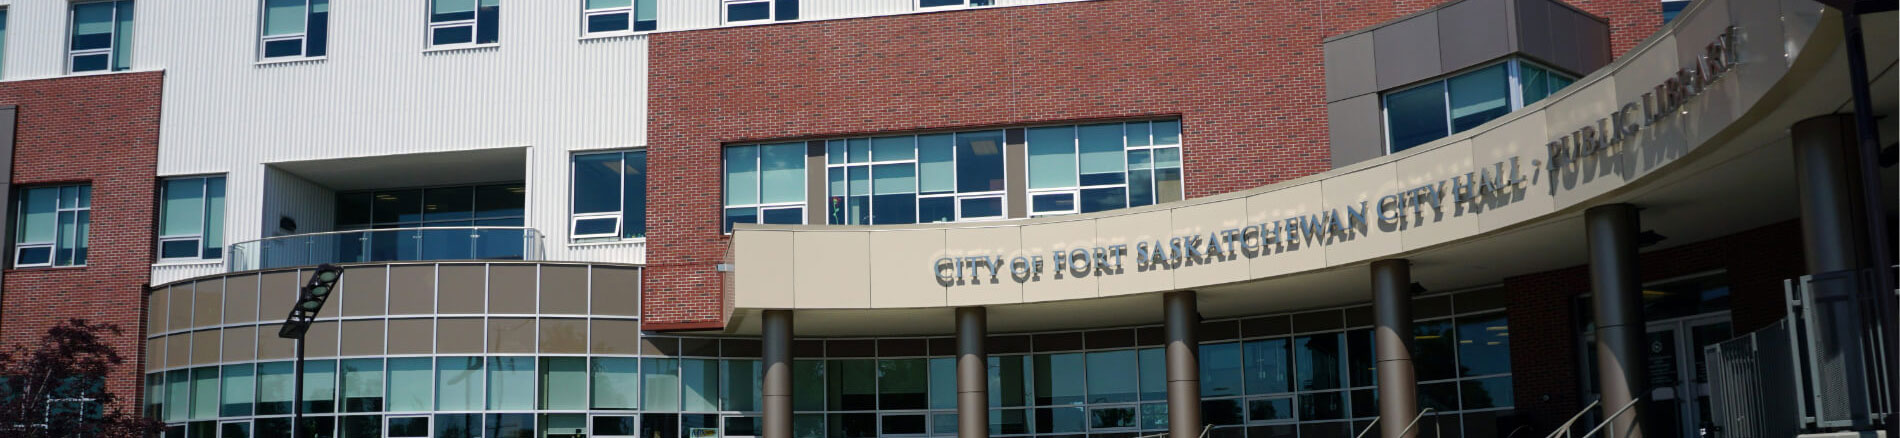 Your City Hall